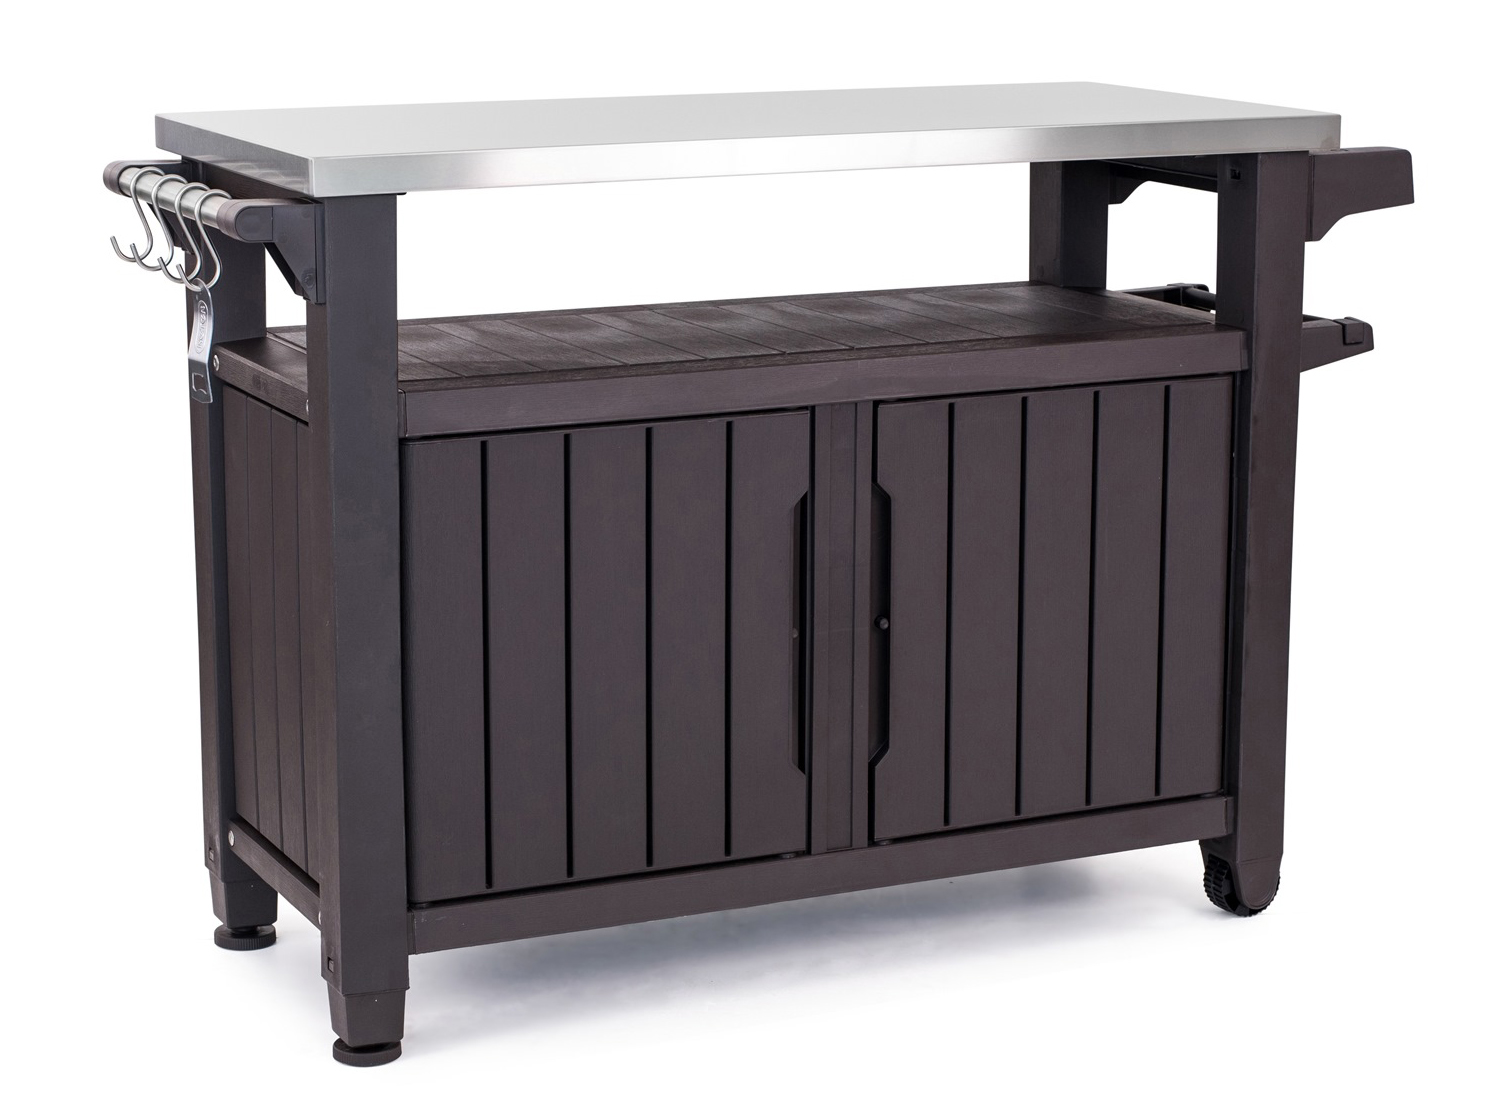 Keter Unity XL Resin Serving Station, All-Weather Plastic and Metal Grill, Storage and... by Resin Furniture